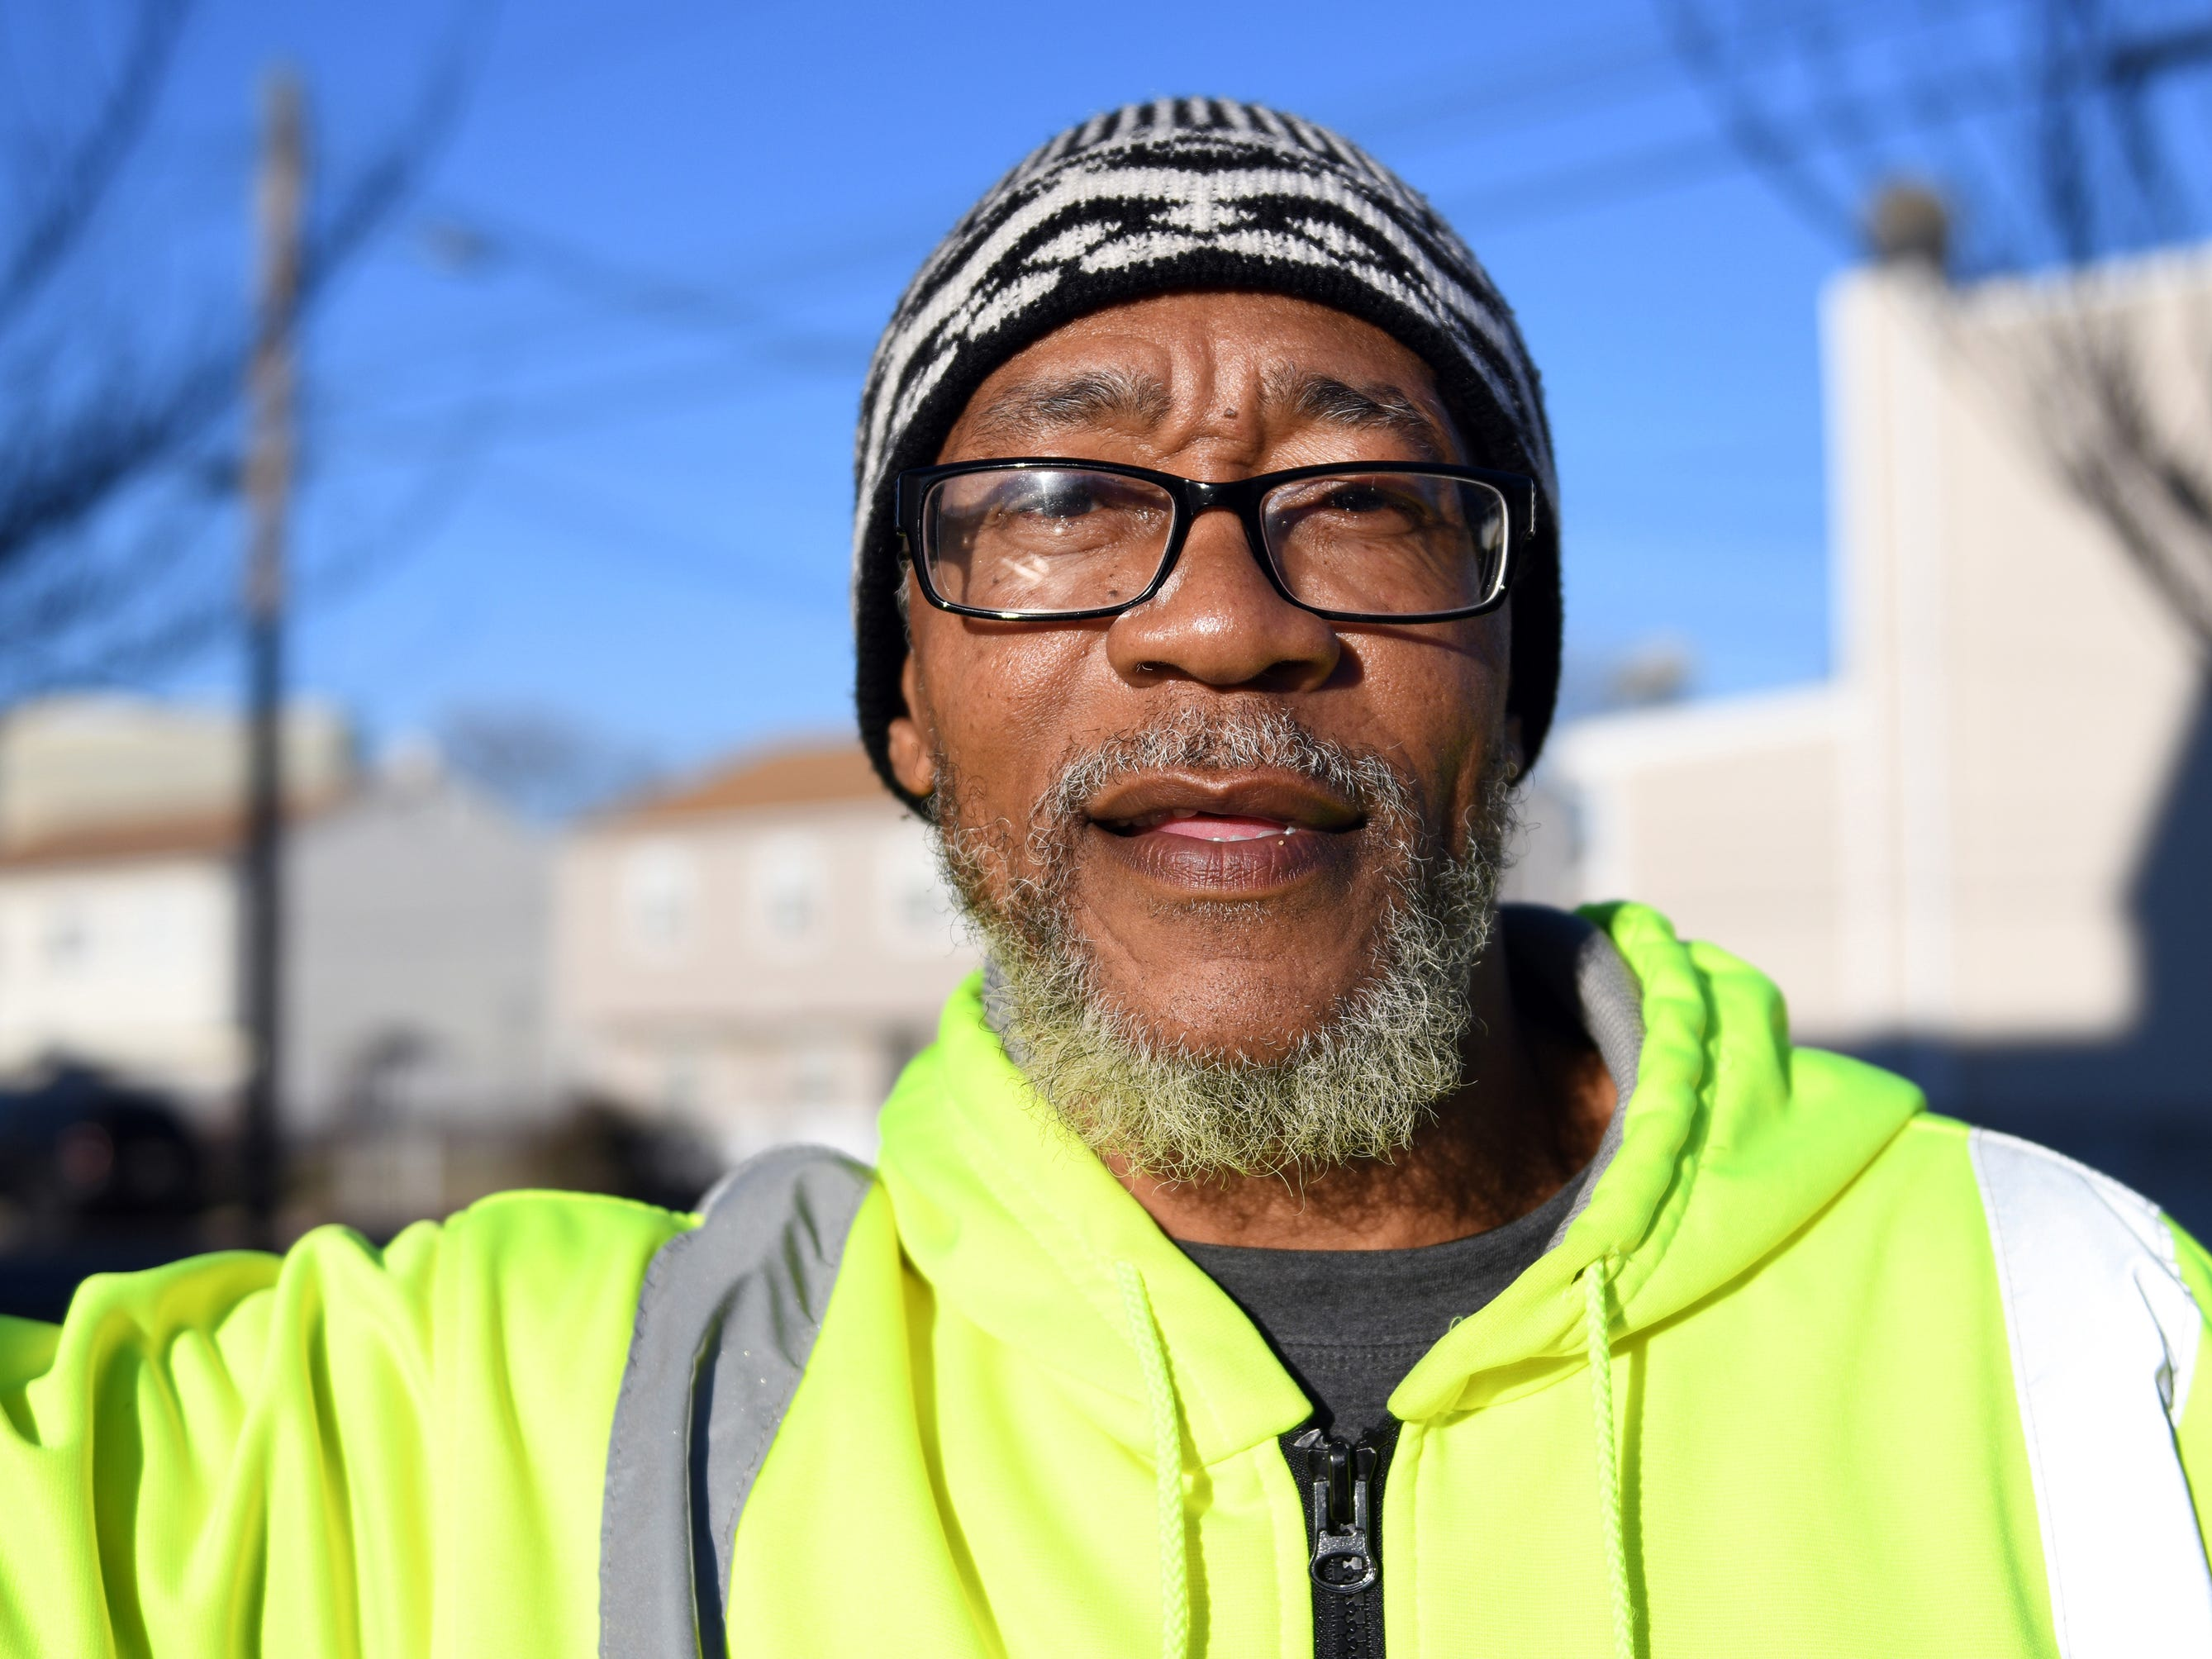 Mr. Safeeullah Muhammad, 55, has lived on Dr. Martin Luther King Jr. Boulevard in Atlantic City for 17 years.